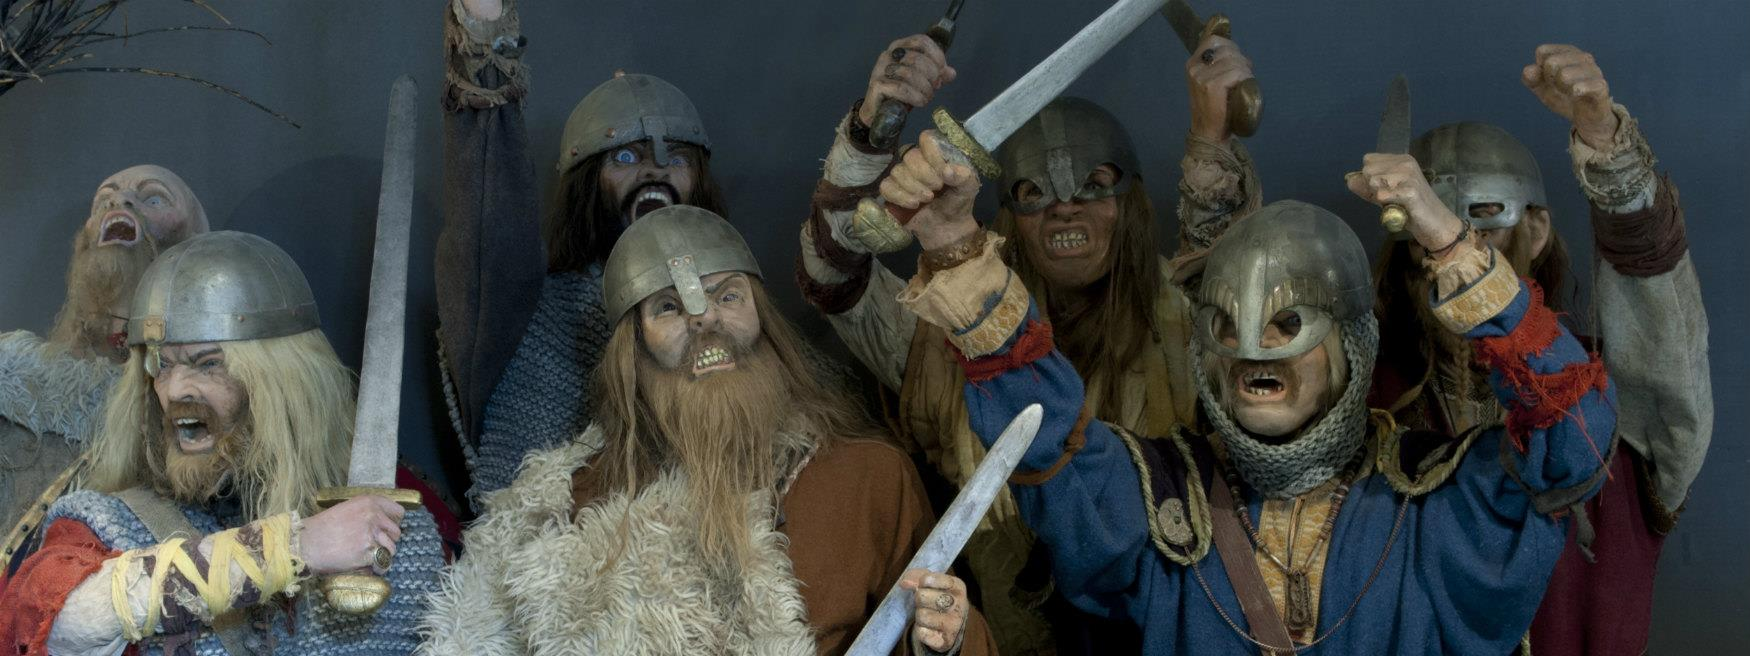 The infamous Vikings